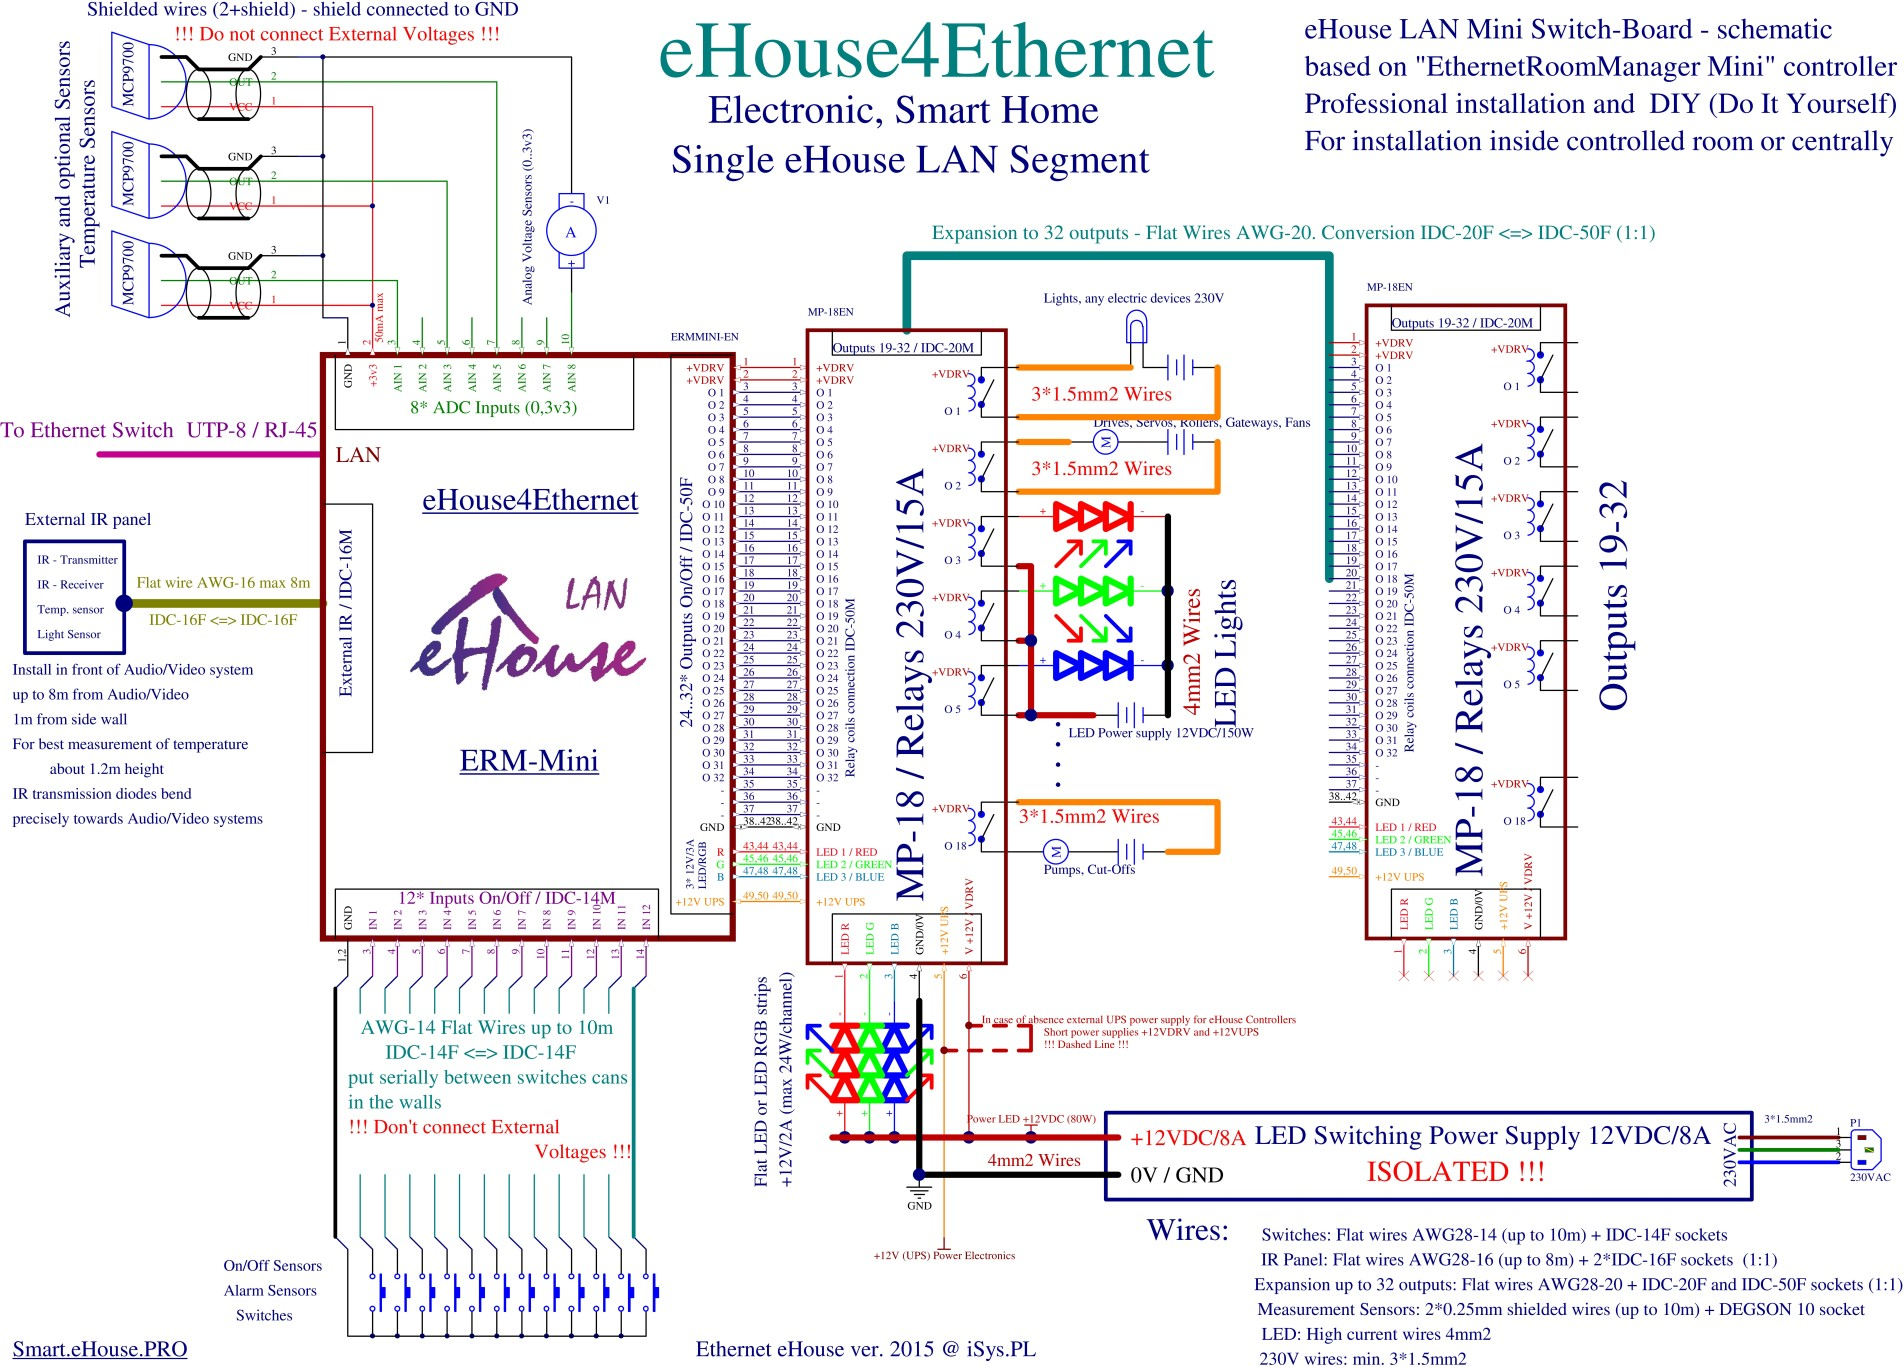 intelligent home eHouse LAN - Mini Mini ERM switching scheme